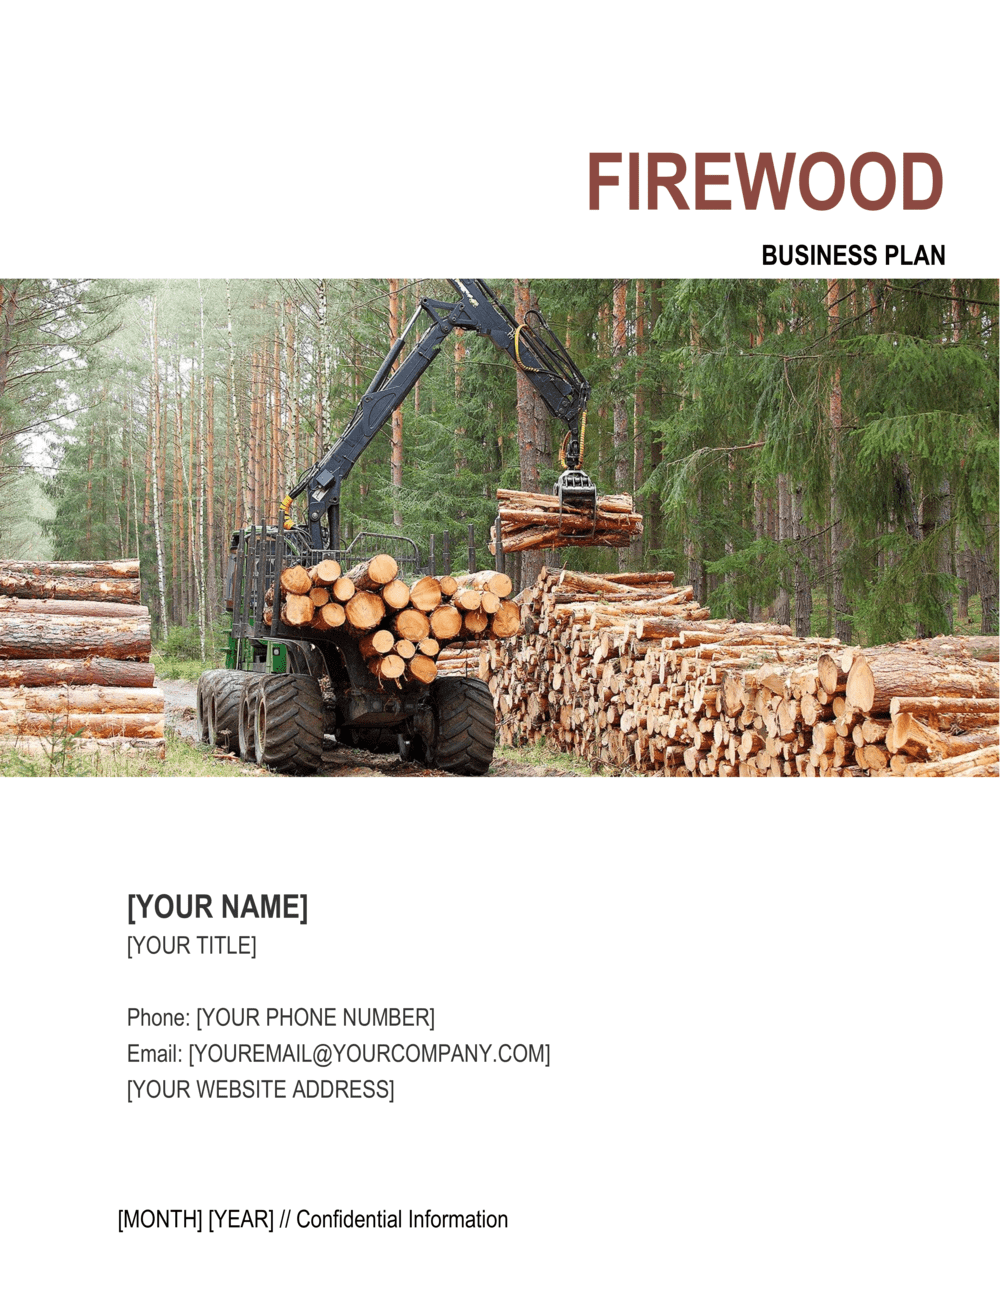 Business-in-a-Box's Firewood Business Plan Template